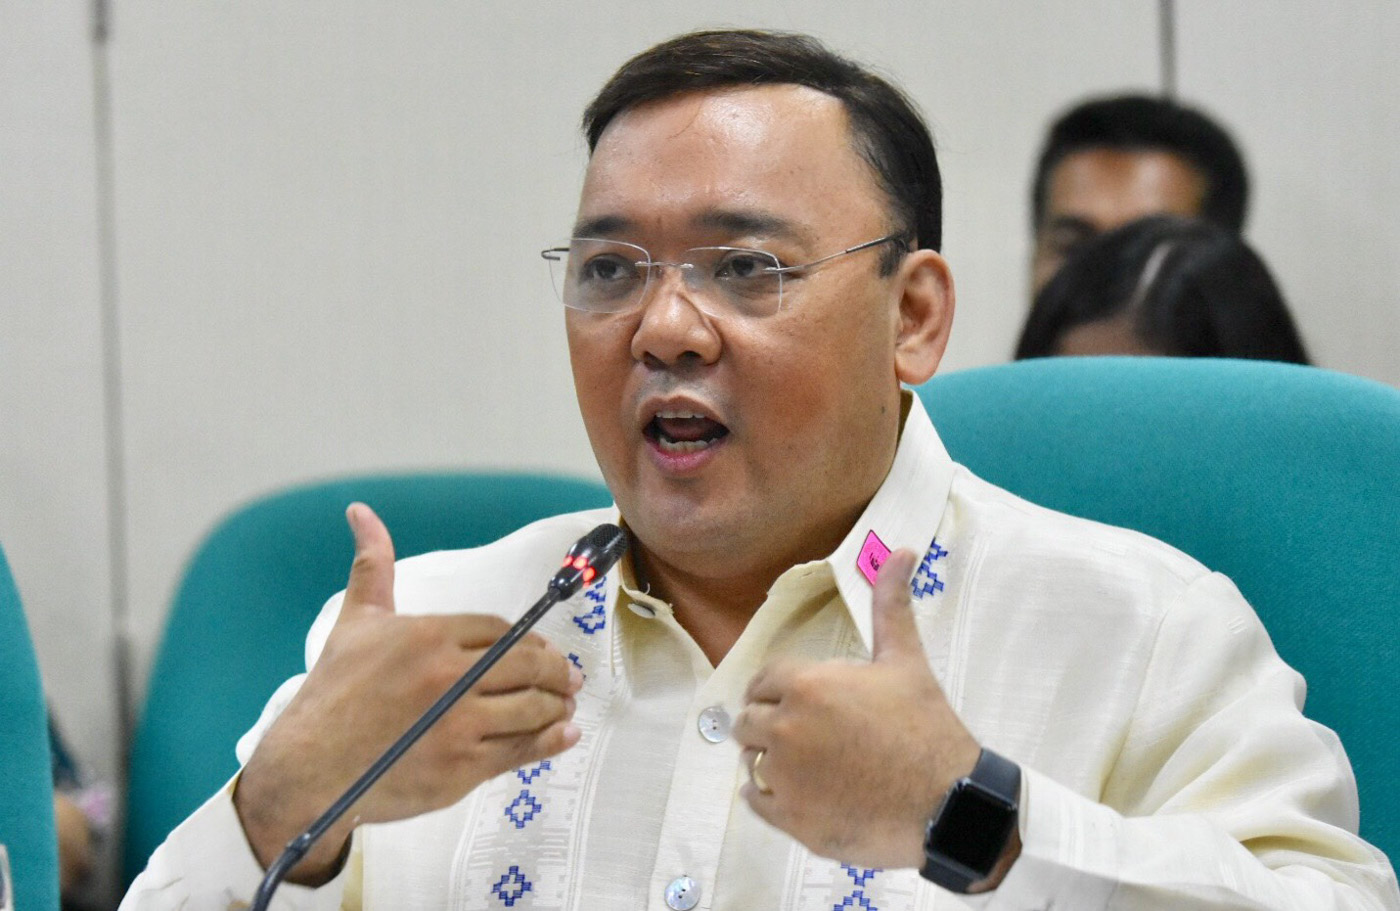 SPEAKING FOR DUTERTE. Presidential Spokesman Harry Roque's messaging as Duterte's spokesman is radically different from his stances as a human rights lawyer. Photo by Angie de Silva/Rappler